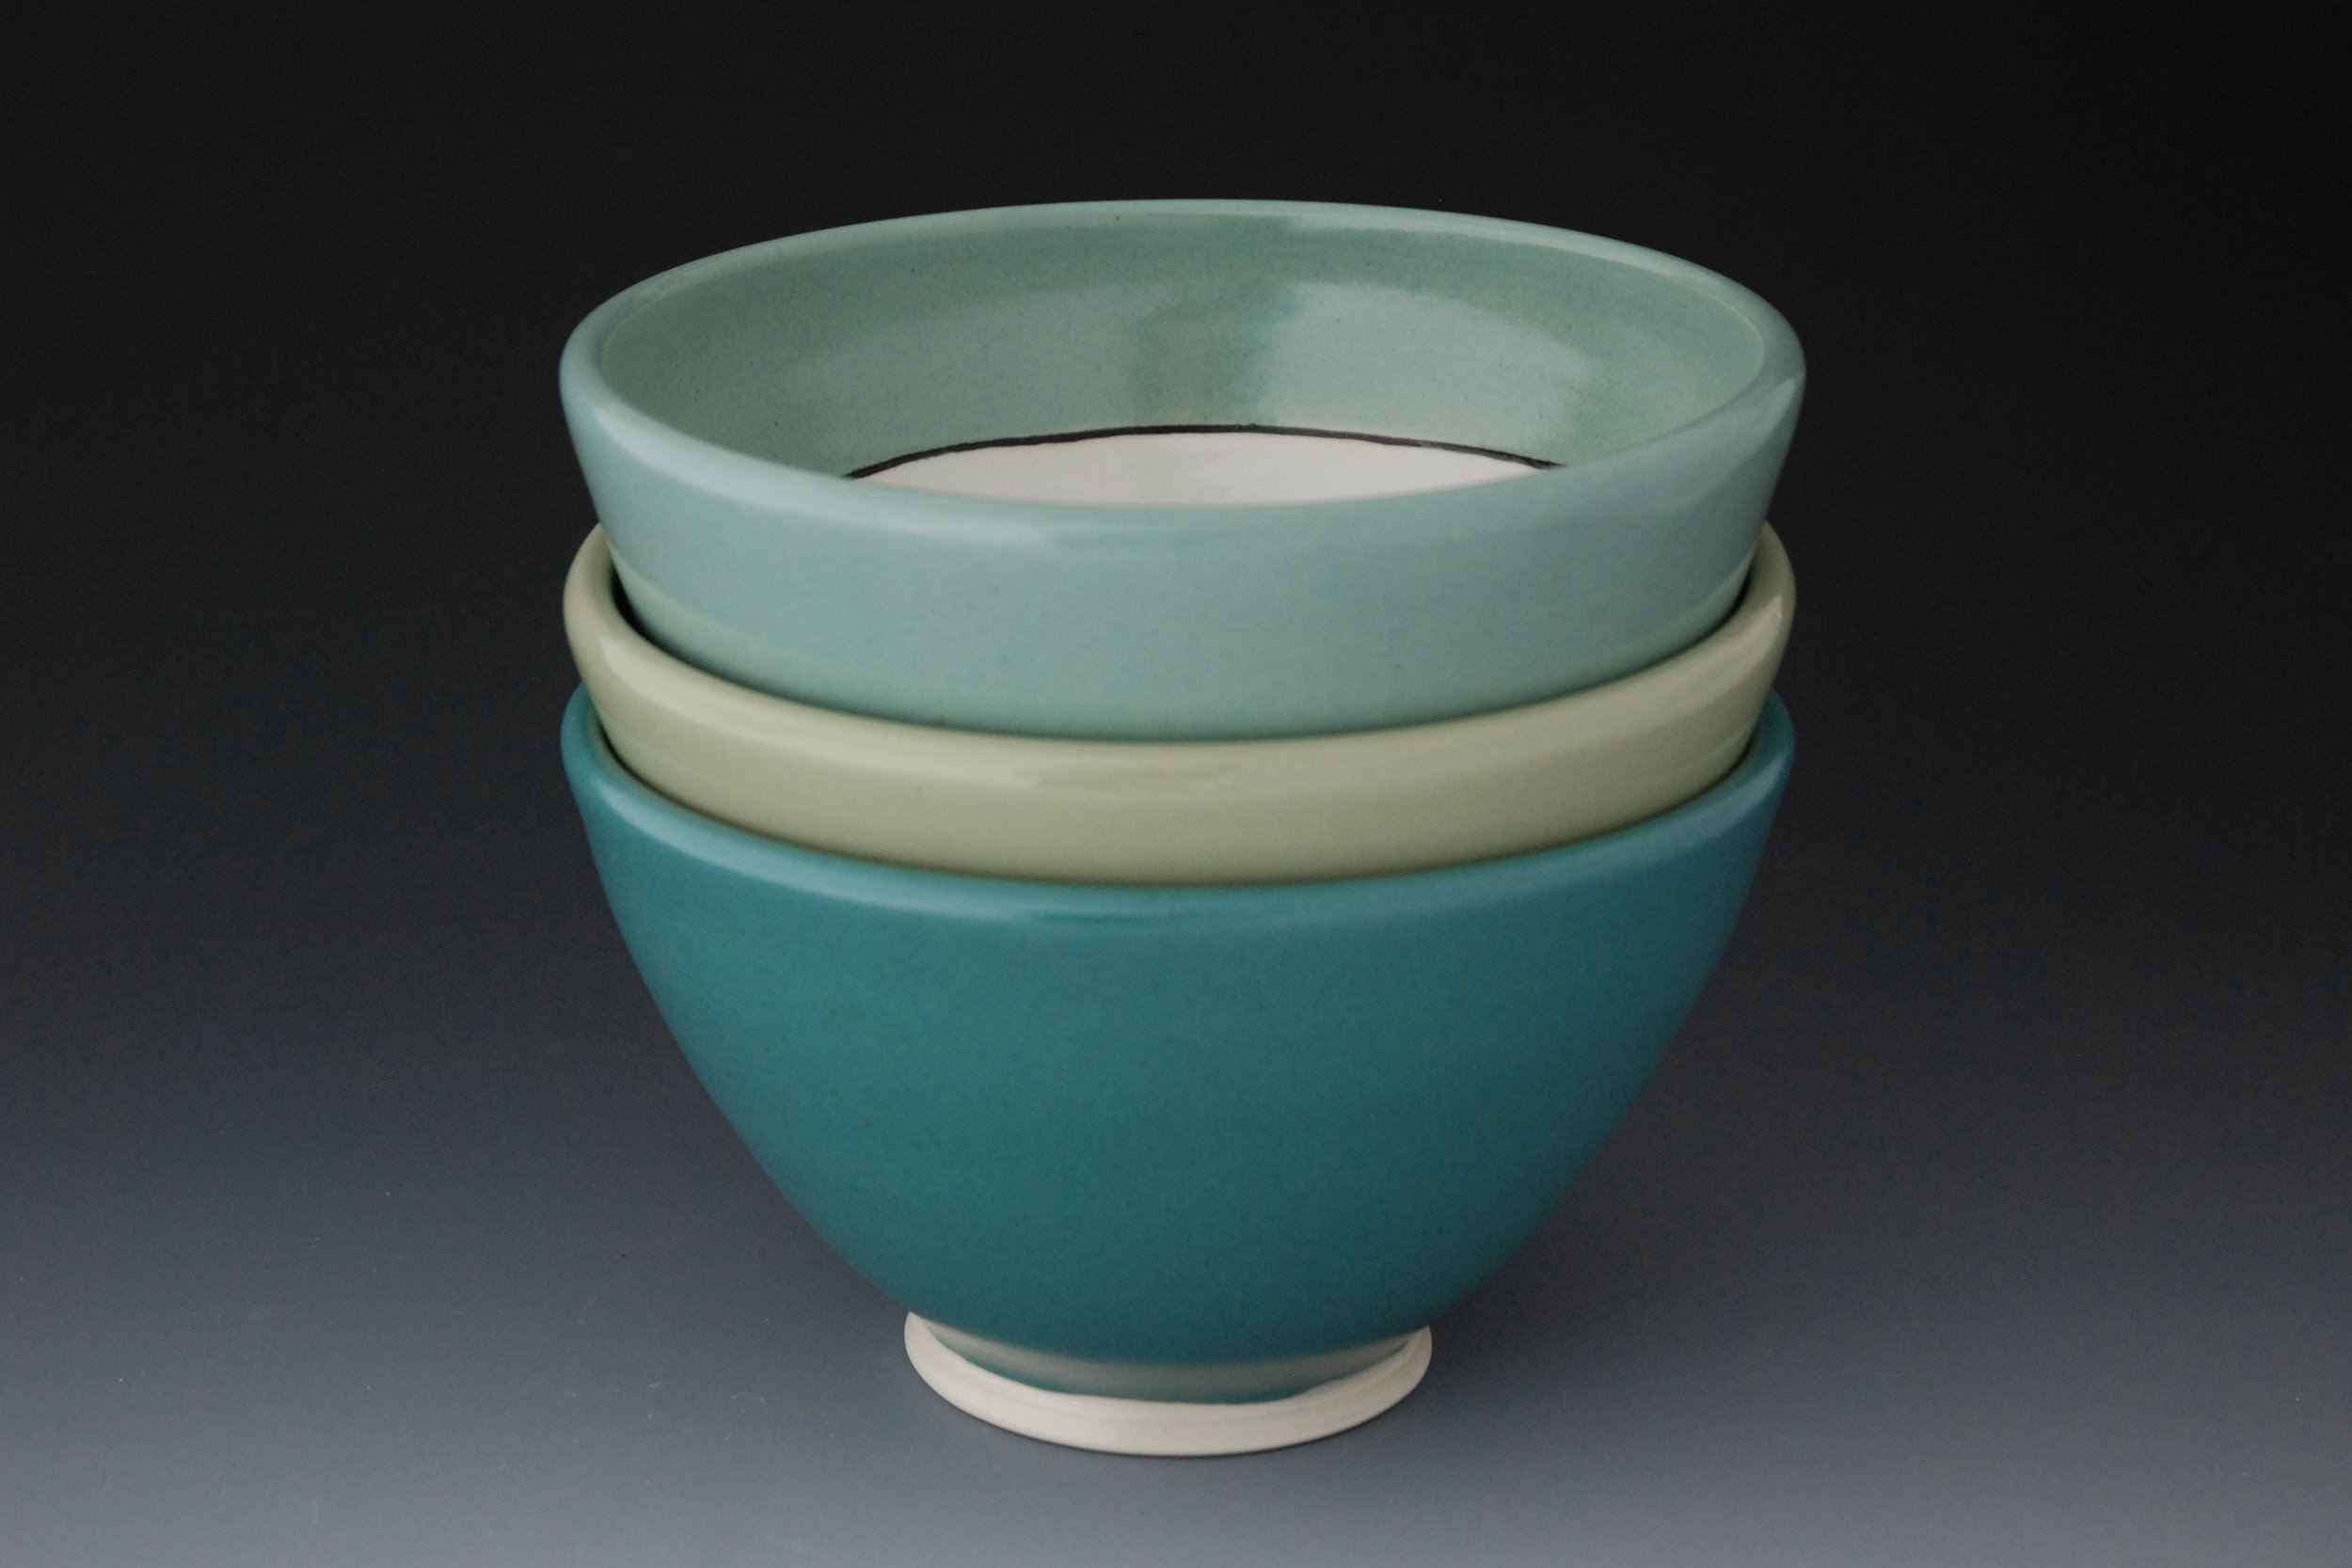 For me, pottery is a blending of both function and aesthetic. While I am very attuned to form, color, and design, drawing much inspiration from nature, I also pay attention to the way my work feels to hold and how easy it is to use. I want the handles of my mugs and pitchers to have a comfortable grip, for example, and I curve up the edges of my plates slightly so sauces don't run off and peas don't escape.  My pots each display evidence of the process I use to create them. In our society dominated by mass production and faceless corporations, handmade objects introduce human connections that I think we all yearn for. I want to draw the user in to look at the differences in subtle details of my work: the way the lines travel around the pot, the point at which they waver or are sharp and crisp or how the glaze breaks over a curve. I hope that the daily use of my ceramics will remind the user of the slower, handmade, and local aspect that they can choose for their lives.